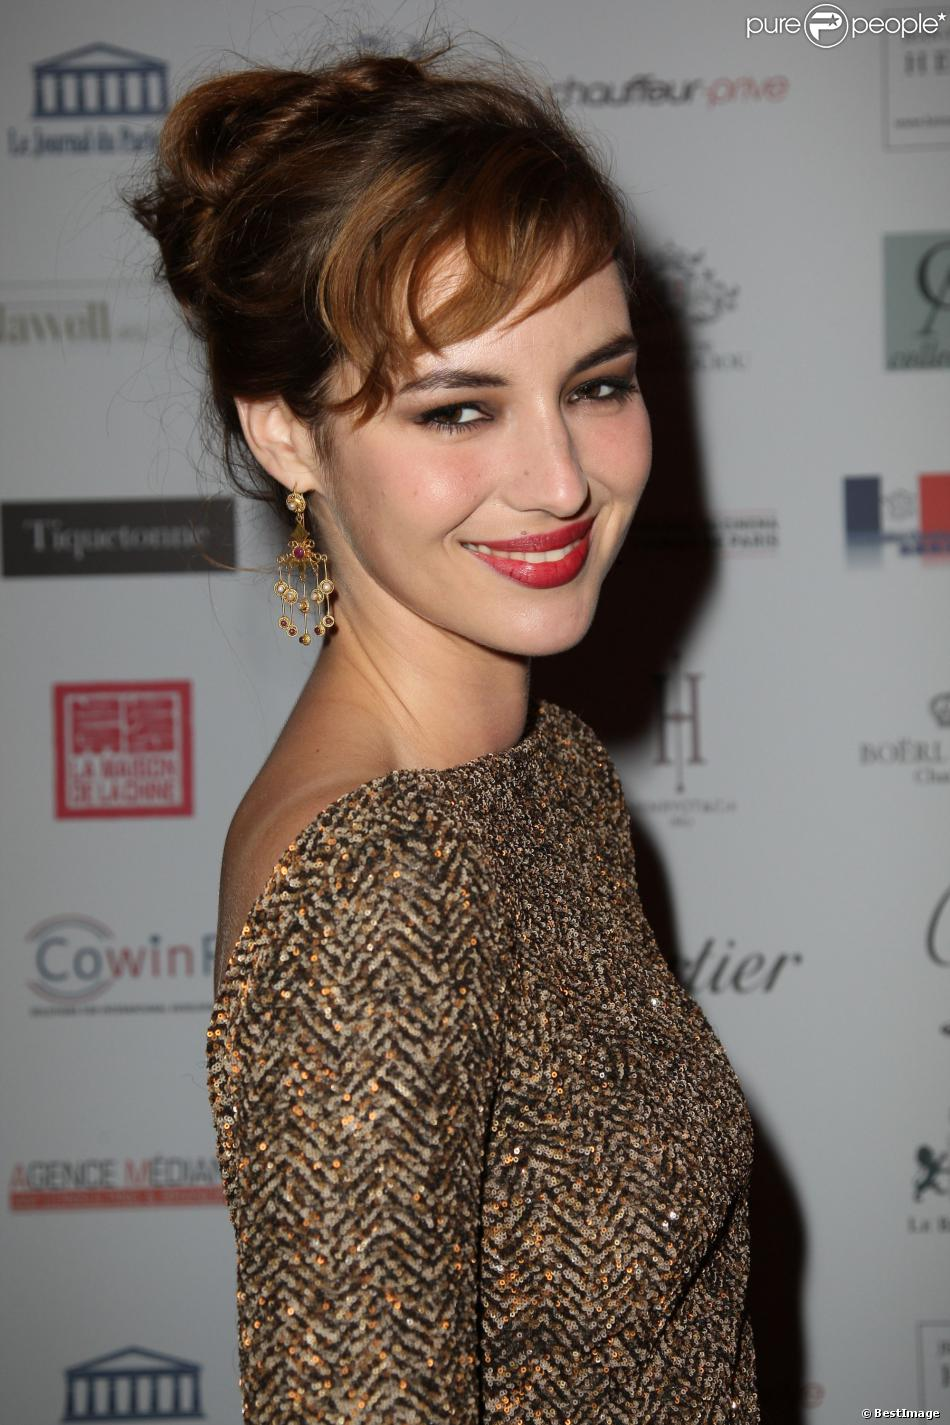 louise bourgoin heightlouise bourgoin photo, louise bourgoin instagram, louise bourgoin photo gallery, louise bourgoin wikipedia, louise bourgoin smoking, louise bourgoin height weight, louise bourgoin zimbio, louise bourgoin astrotheme, louise bourgoin interview, louise bourgoin filme, louise bourgoin adele, louise bourgoin twitter, louise bourgoin foto, louise bourgoin kenzo, louise bourgoin filmleri, louise bourgoin facebook, louise bourgoin wiki fr, louise bourgoin height, louise bourgoin, louise bourgoin couple